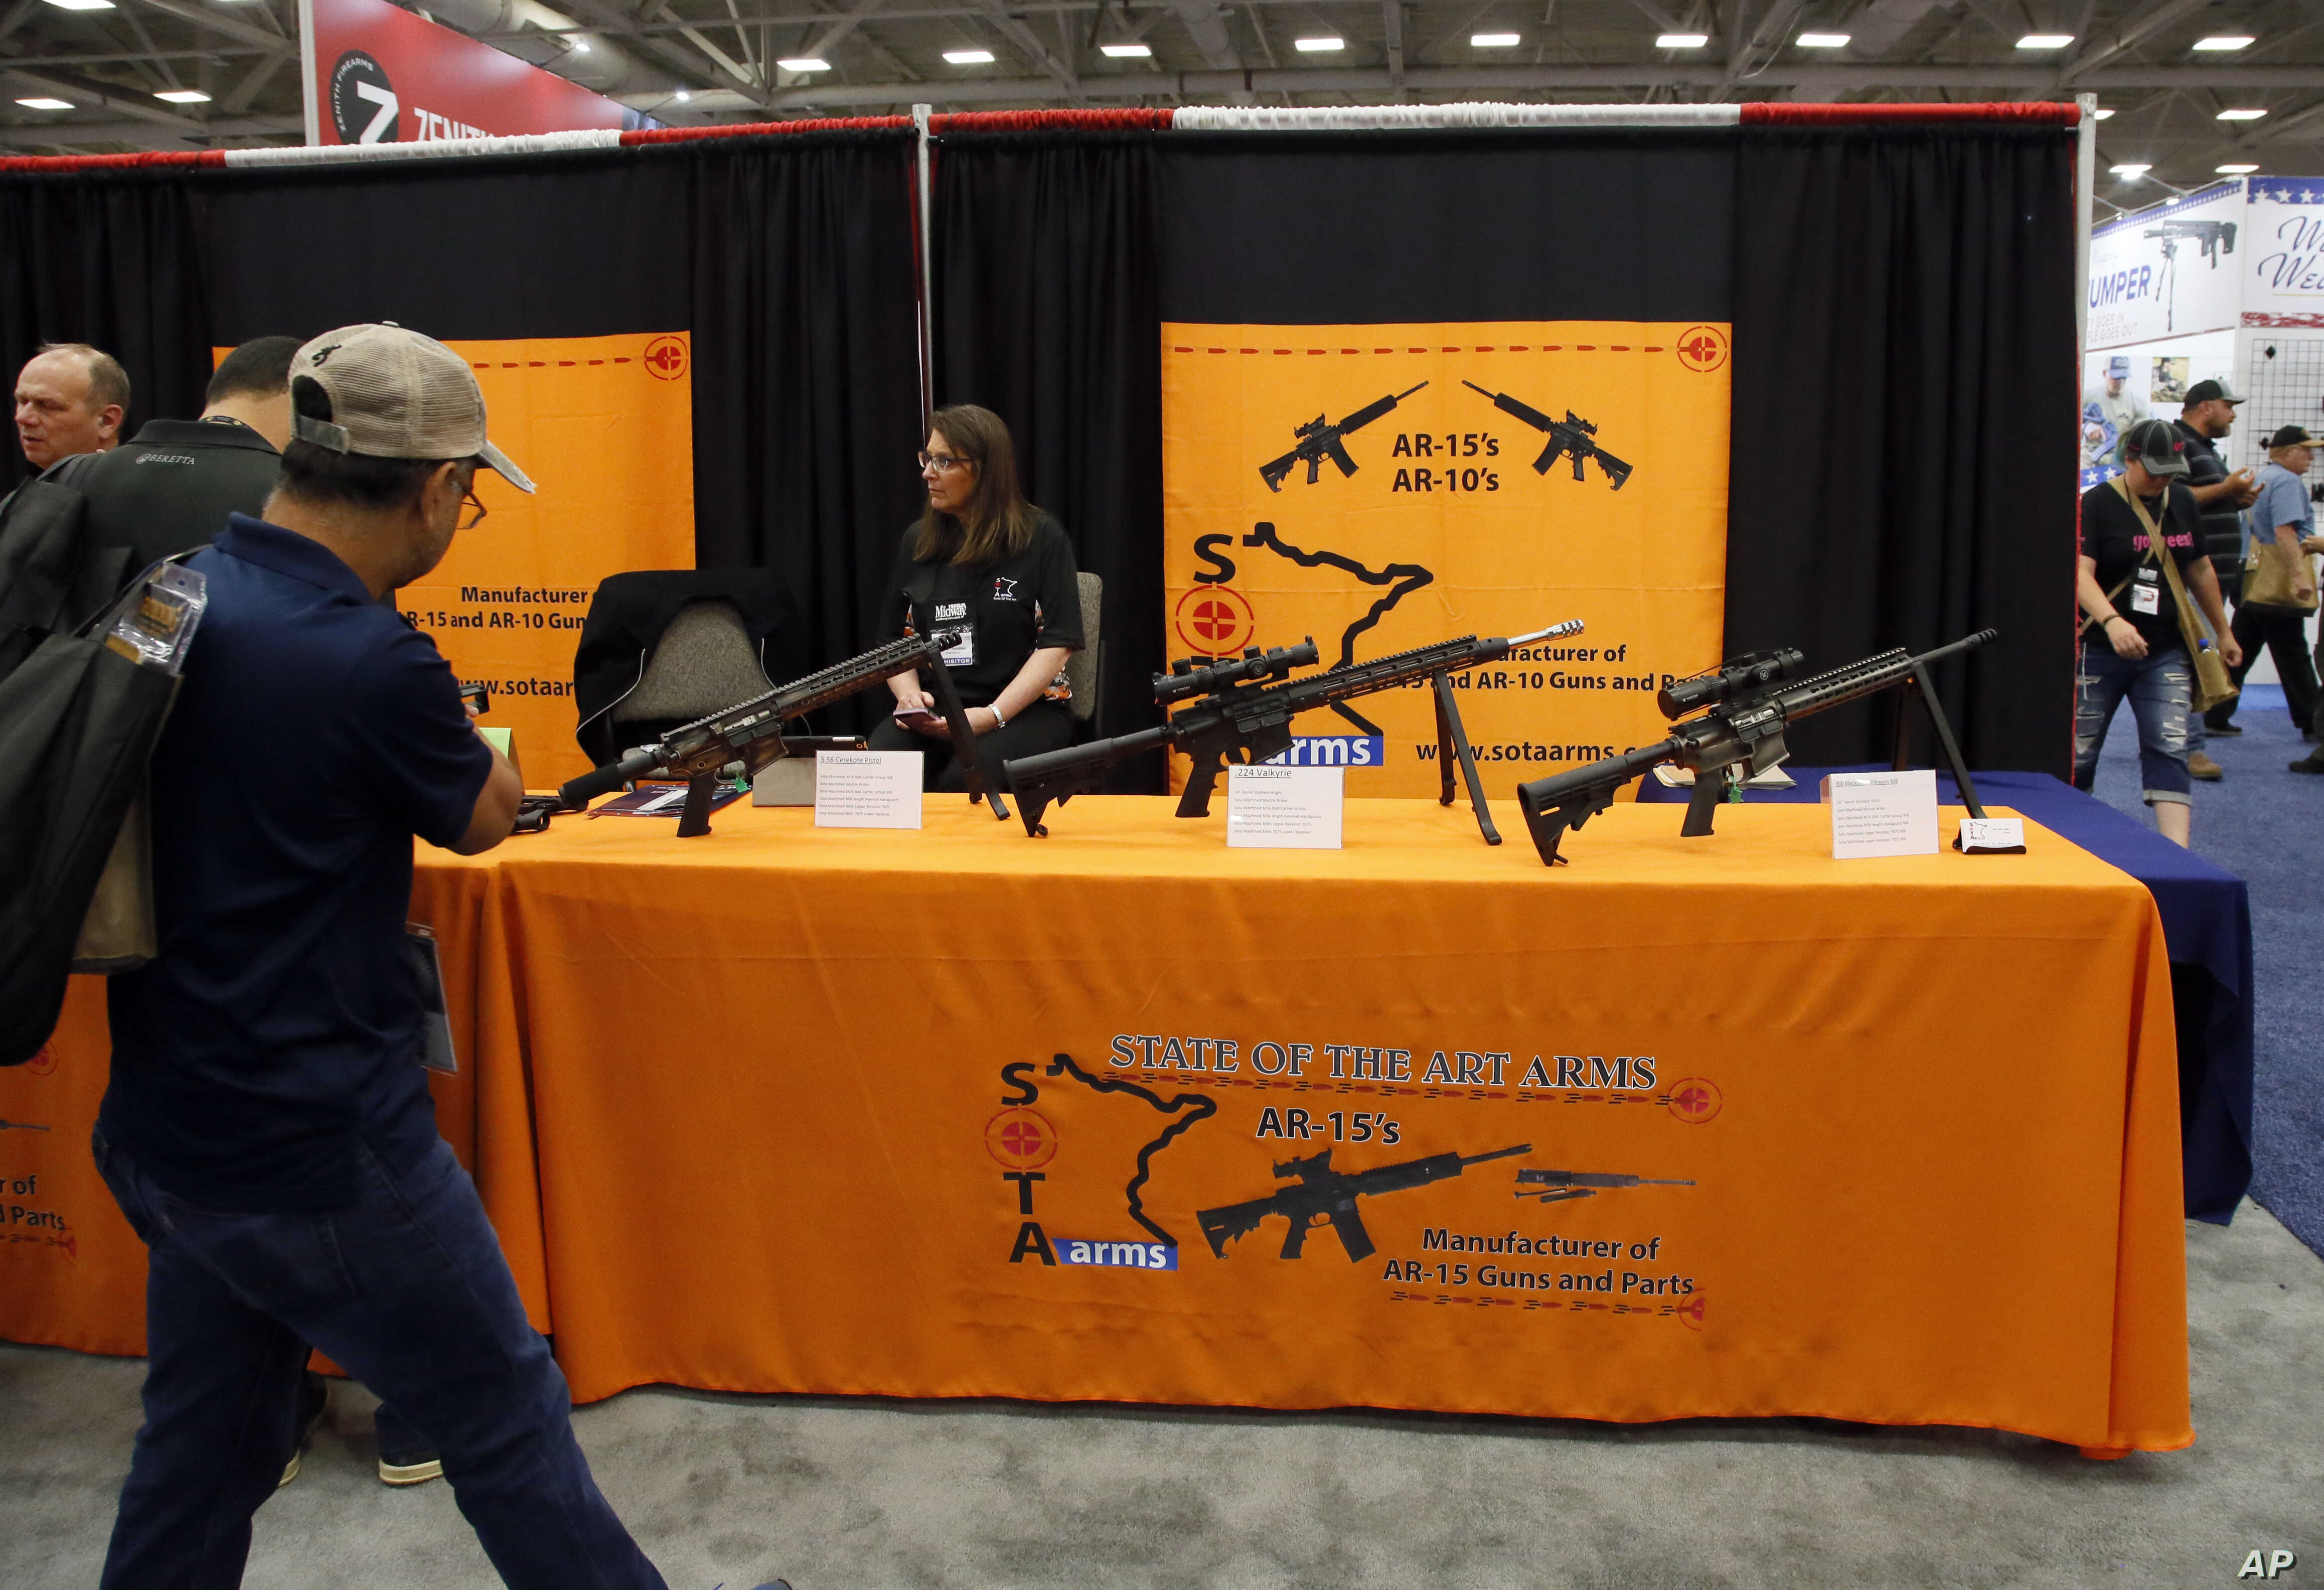 Attendees walk by a display of AR-15's and AR-10's at the National Rifle Association convention in Dallas, May 4, 2018.